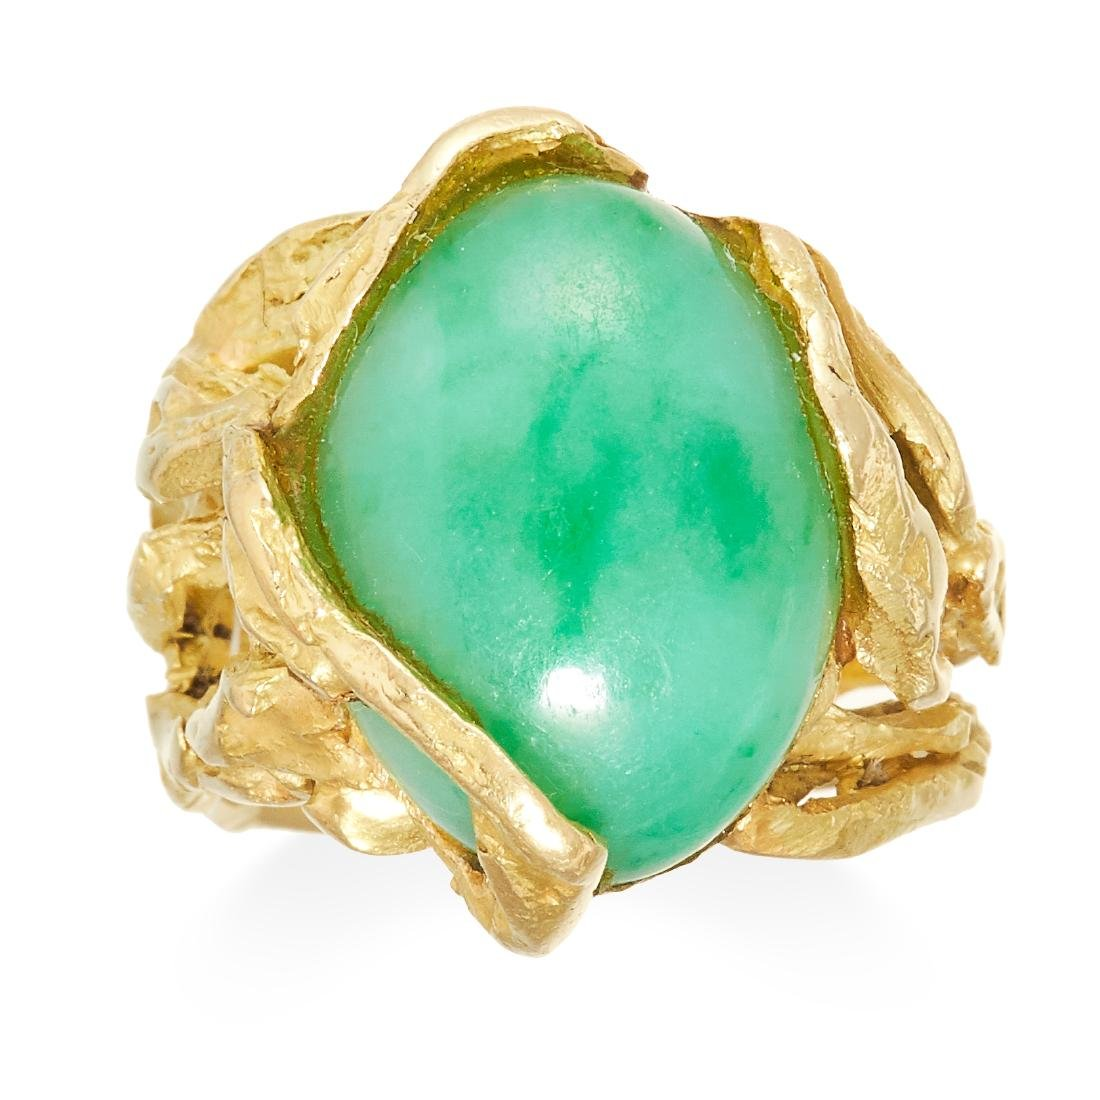 A VINTAGE JADEITE JADE DRESS RING in 18ct yellow gold,